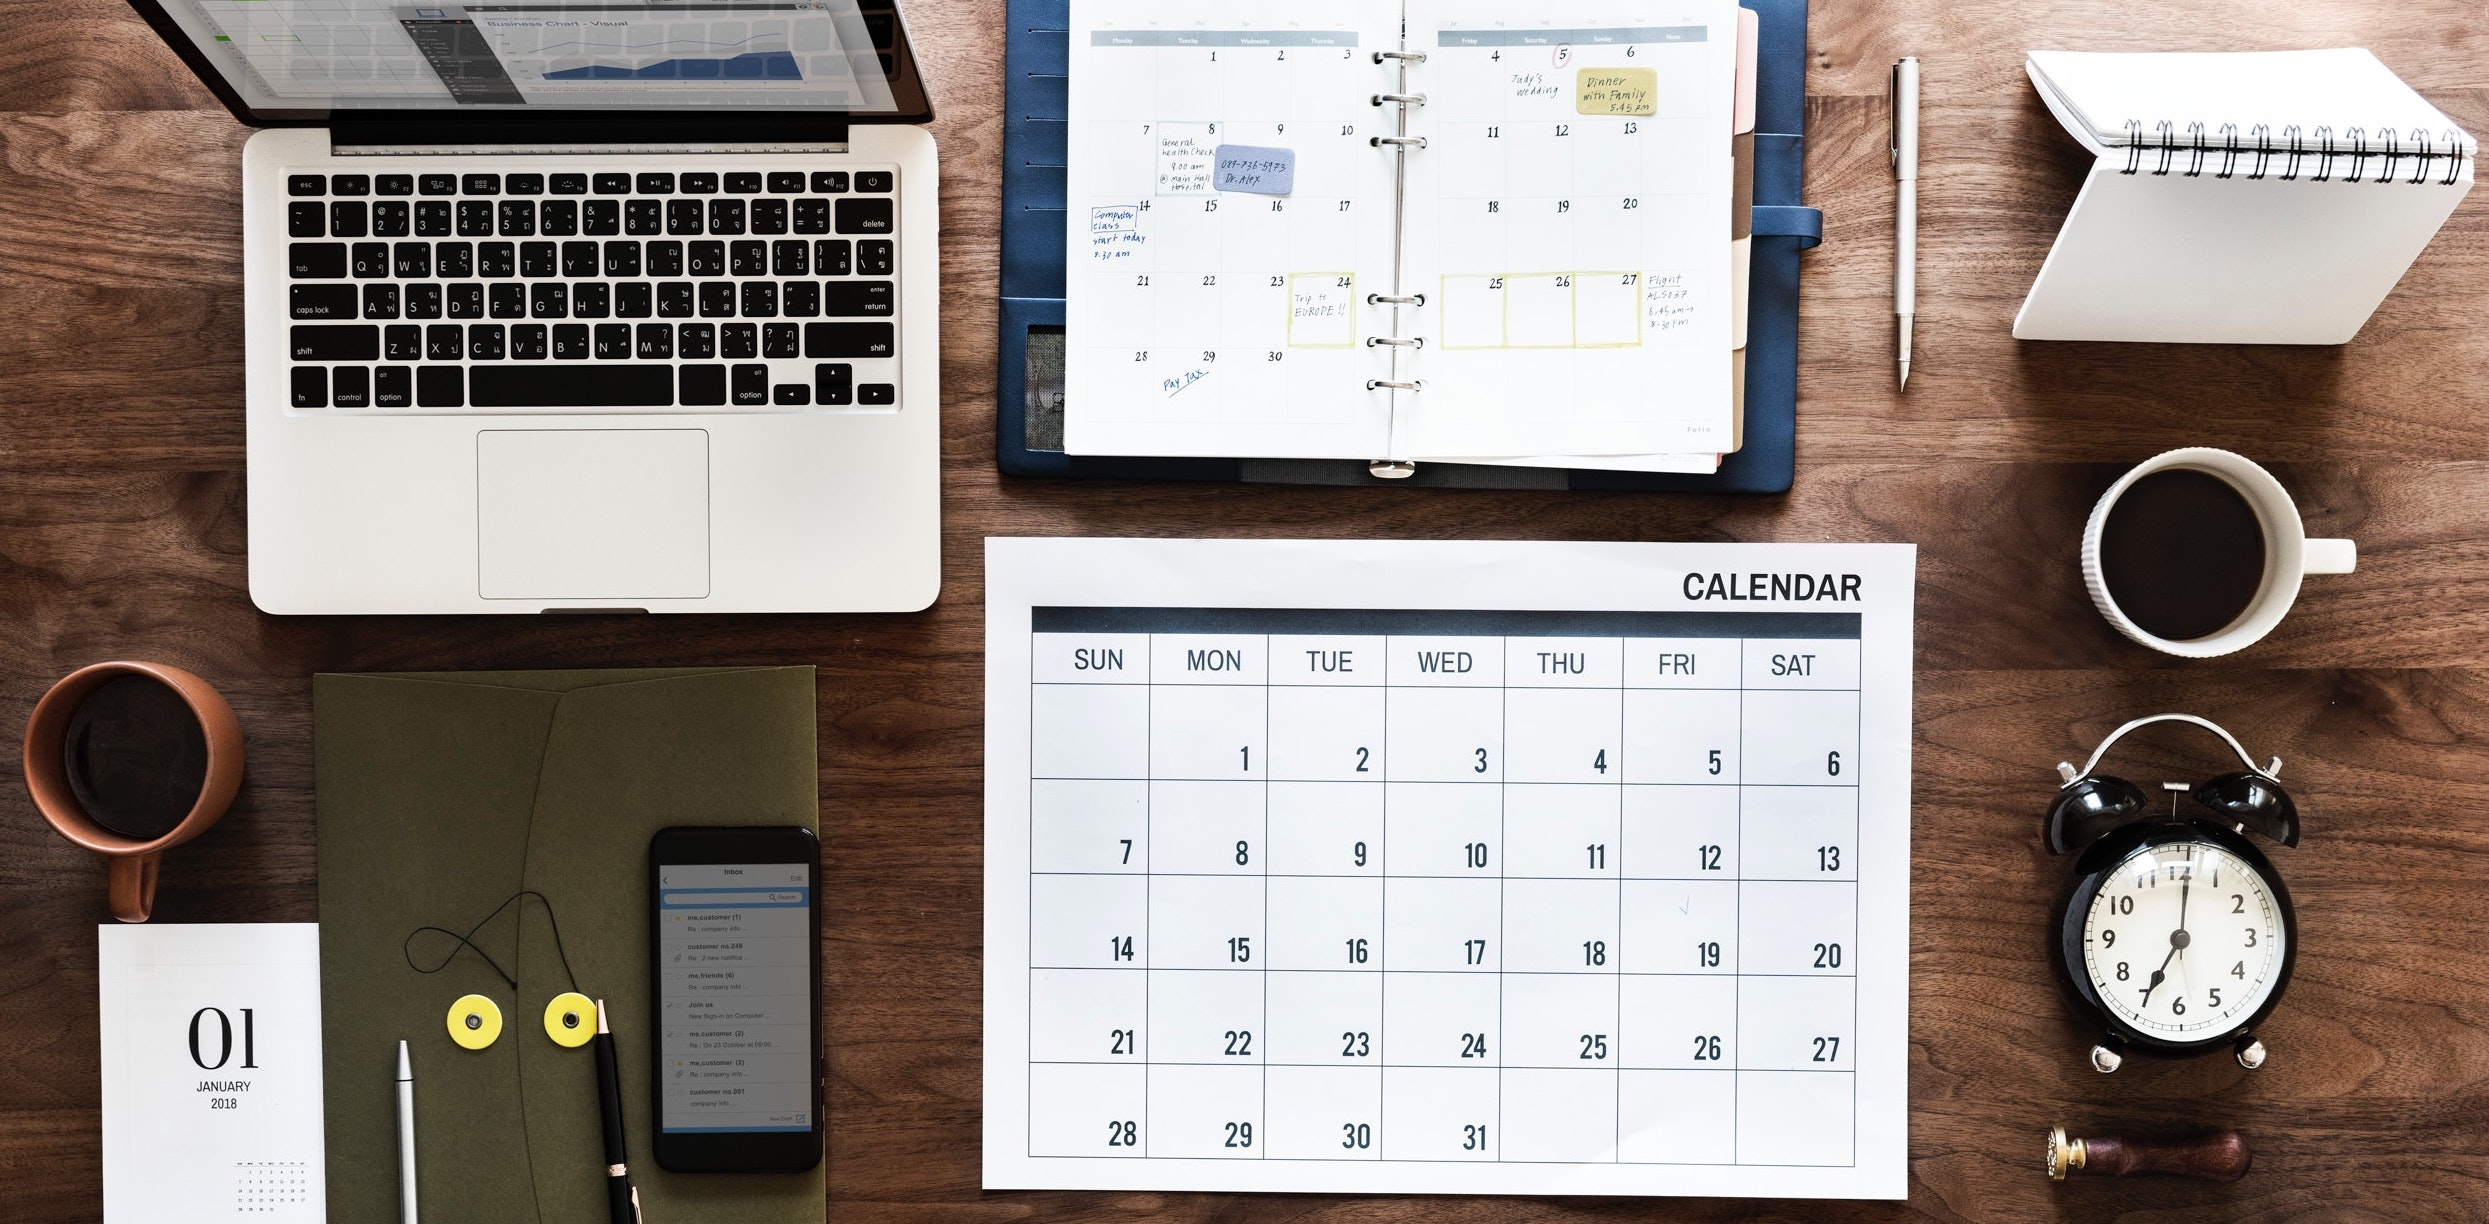 Life Admin Life Hacks set up a shared calendar